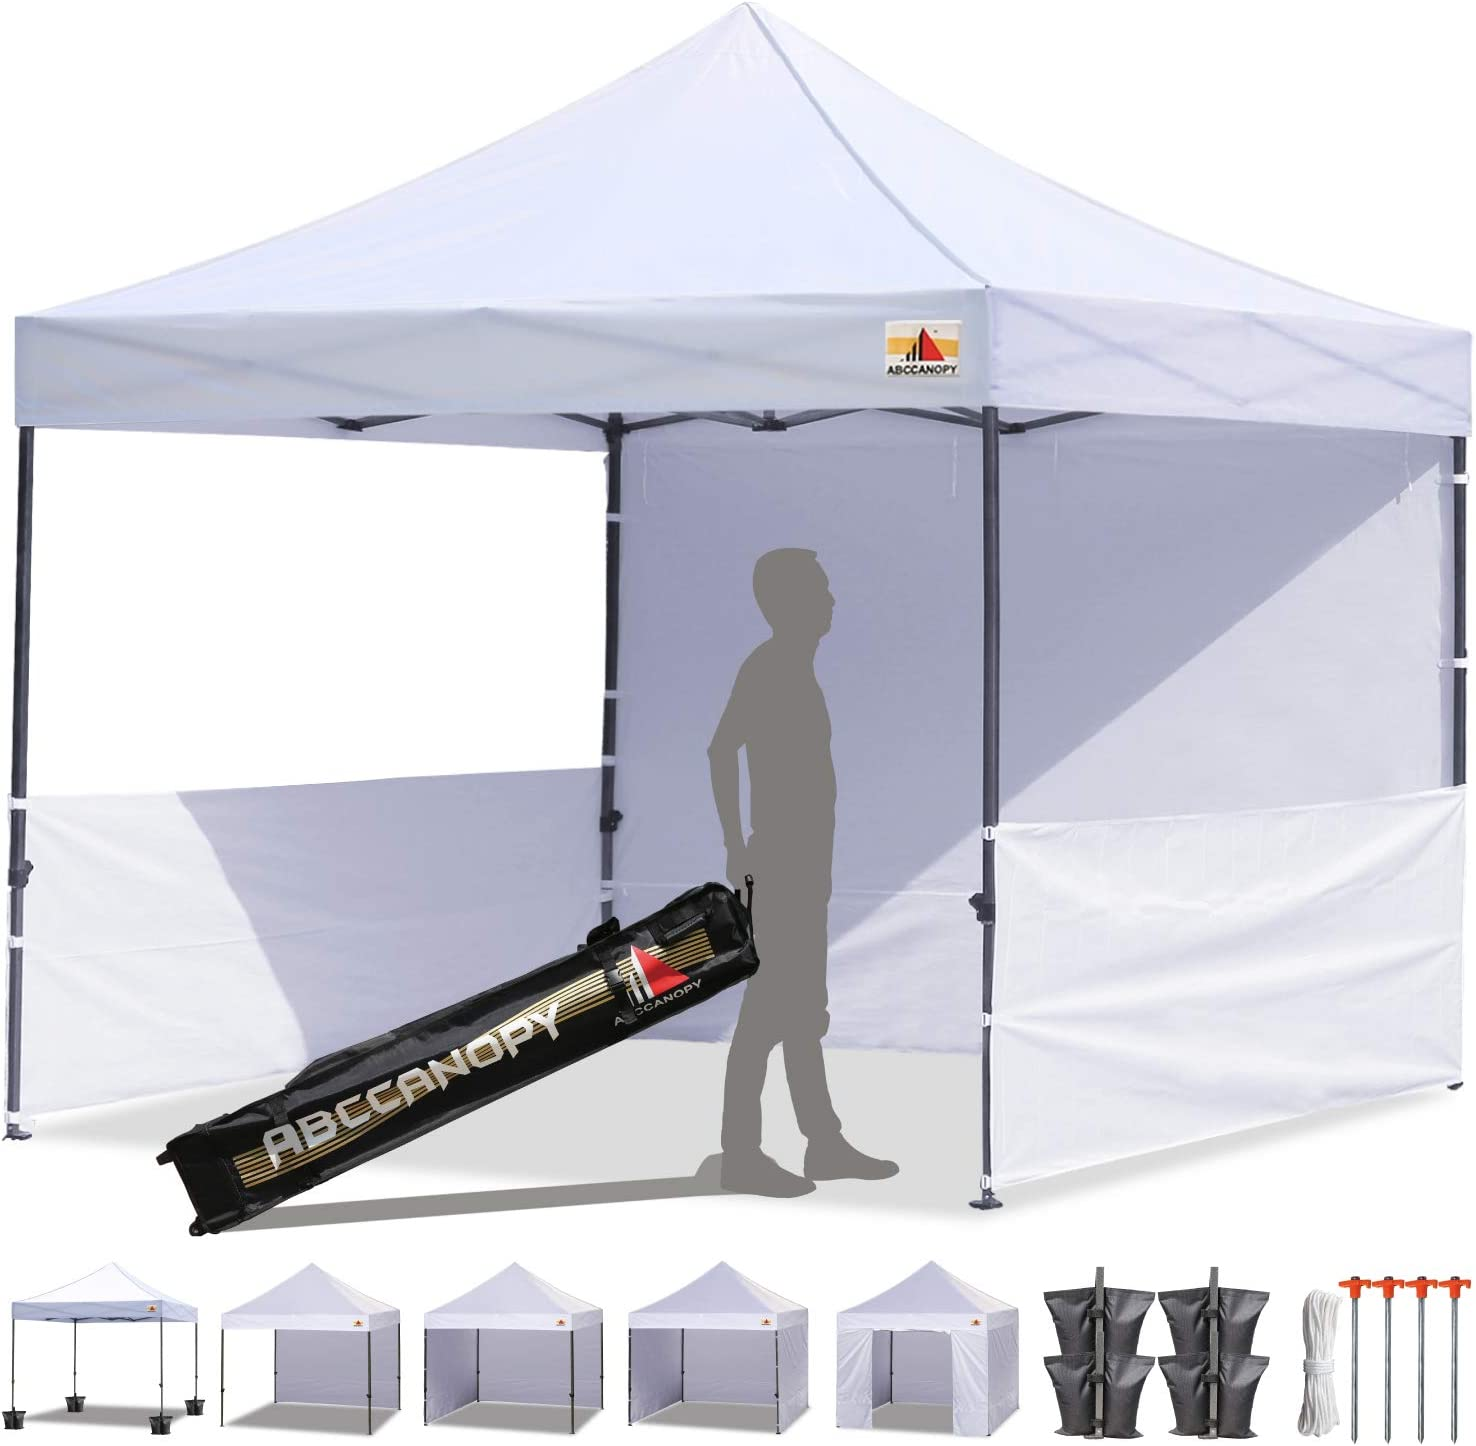 ABCCANOPY 10×10 Rhino-Series Easy Pop Up Canopy Tent Commercial Grade with Matching Sidewalls and Roller Bag Bonus 2pcs Half Wall White